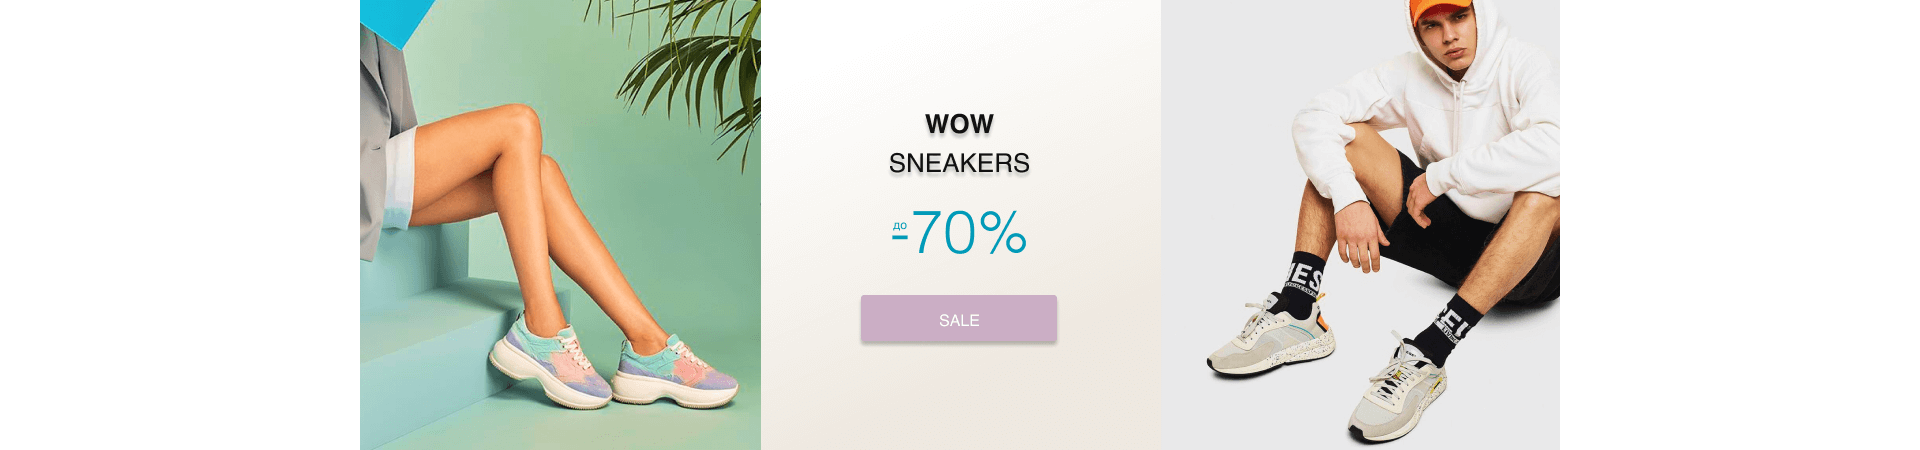 Wow sneakers